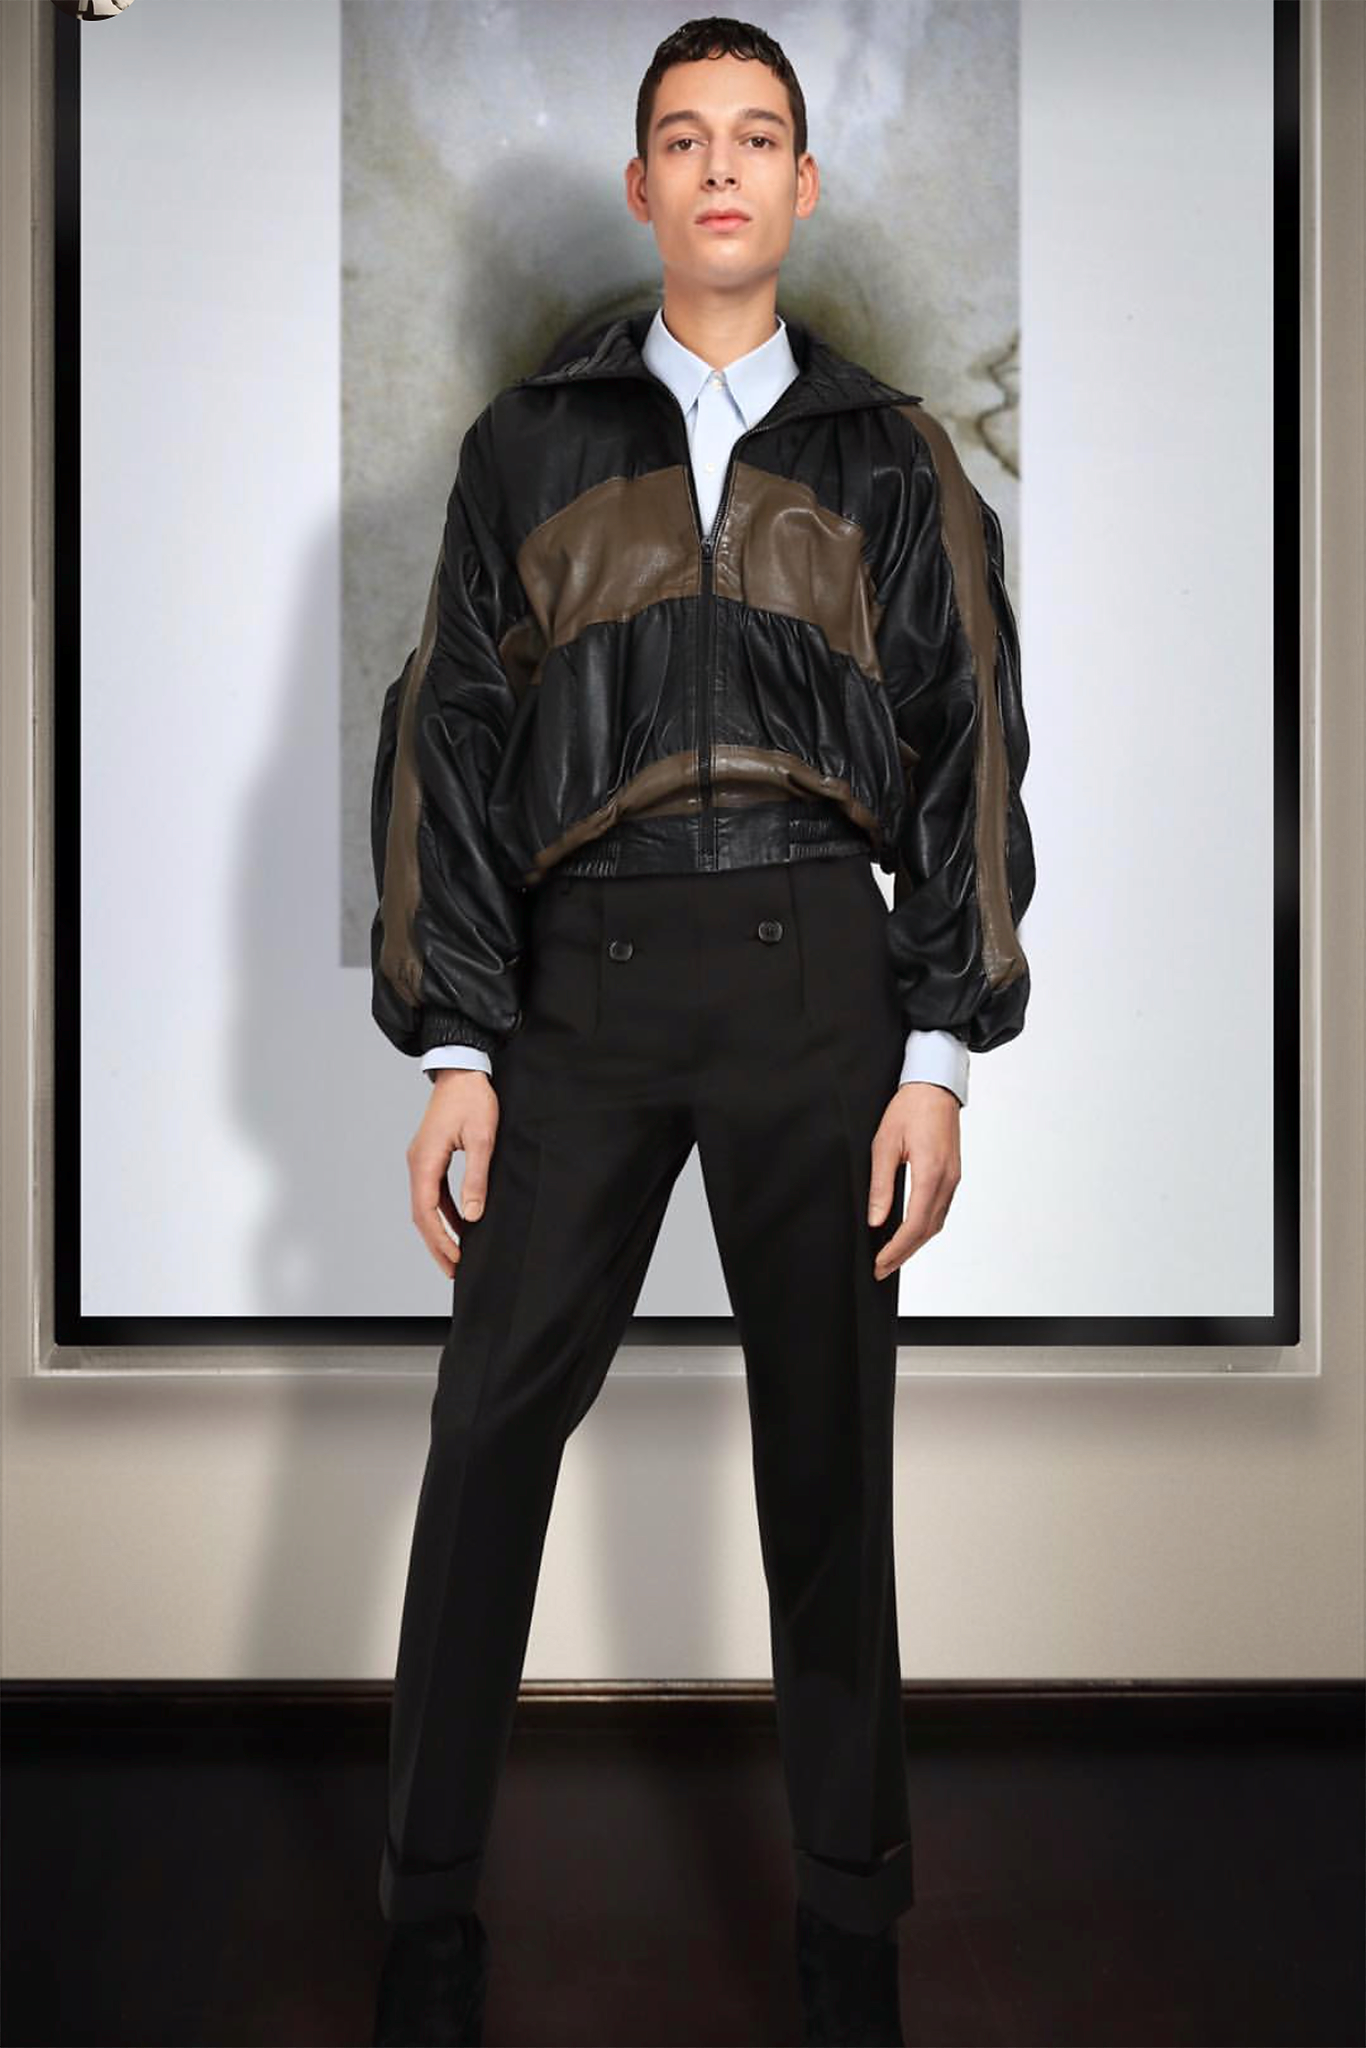 A look from Stefano Pilati's Upcoming Collection.